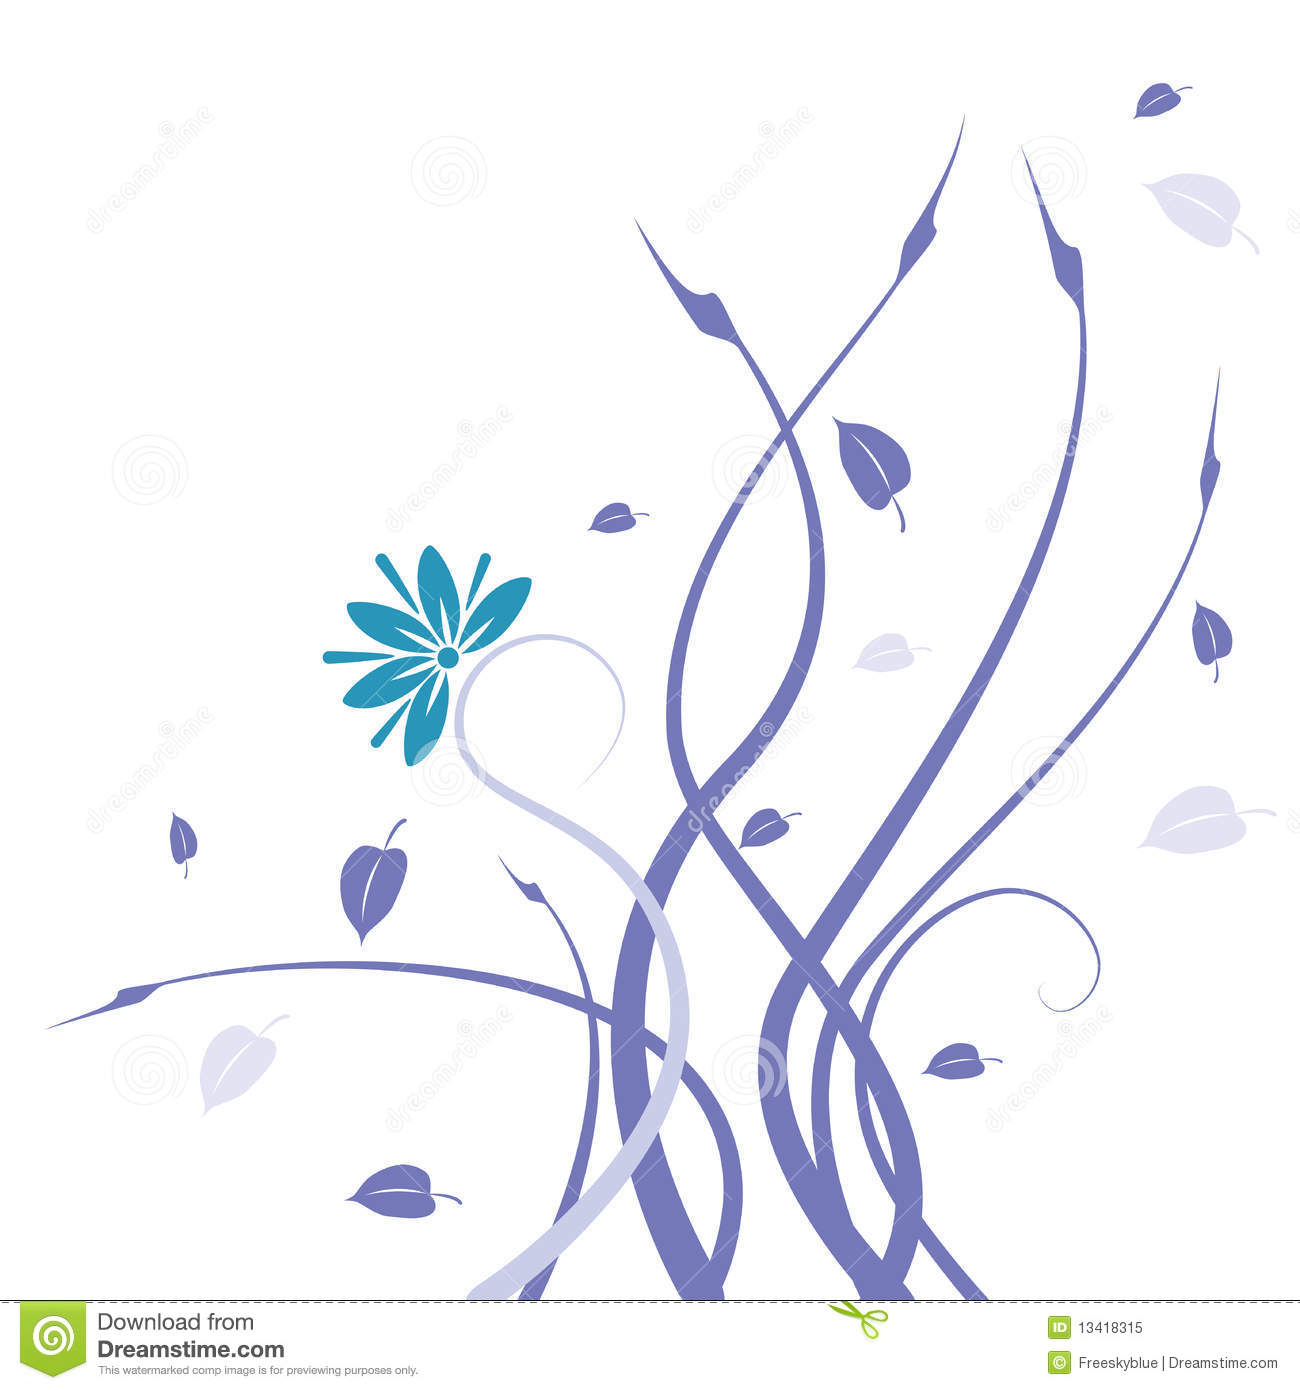 Black Flower And Vines Pattern Royalty Free Stock Image: Blue Wild Flower And Vines Pattern Royalty Free Stock